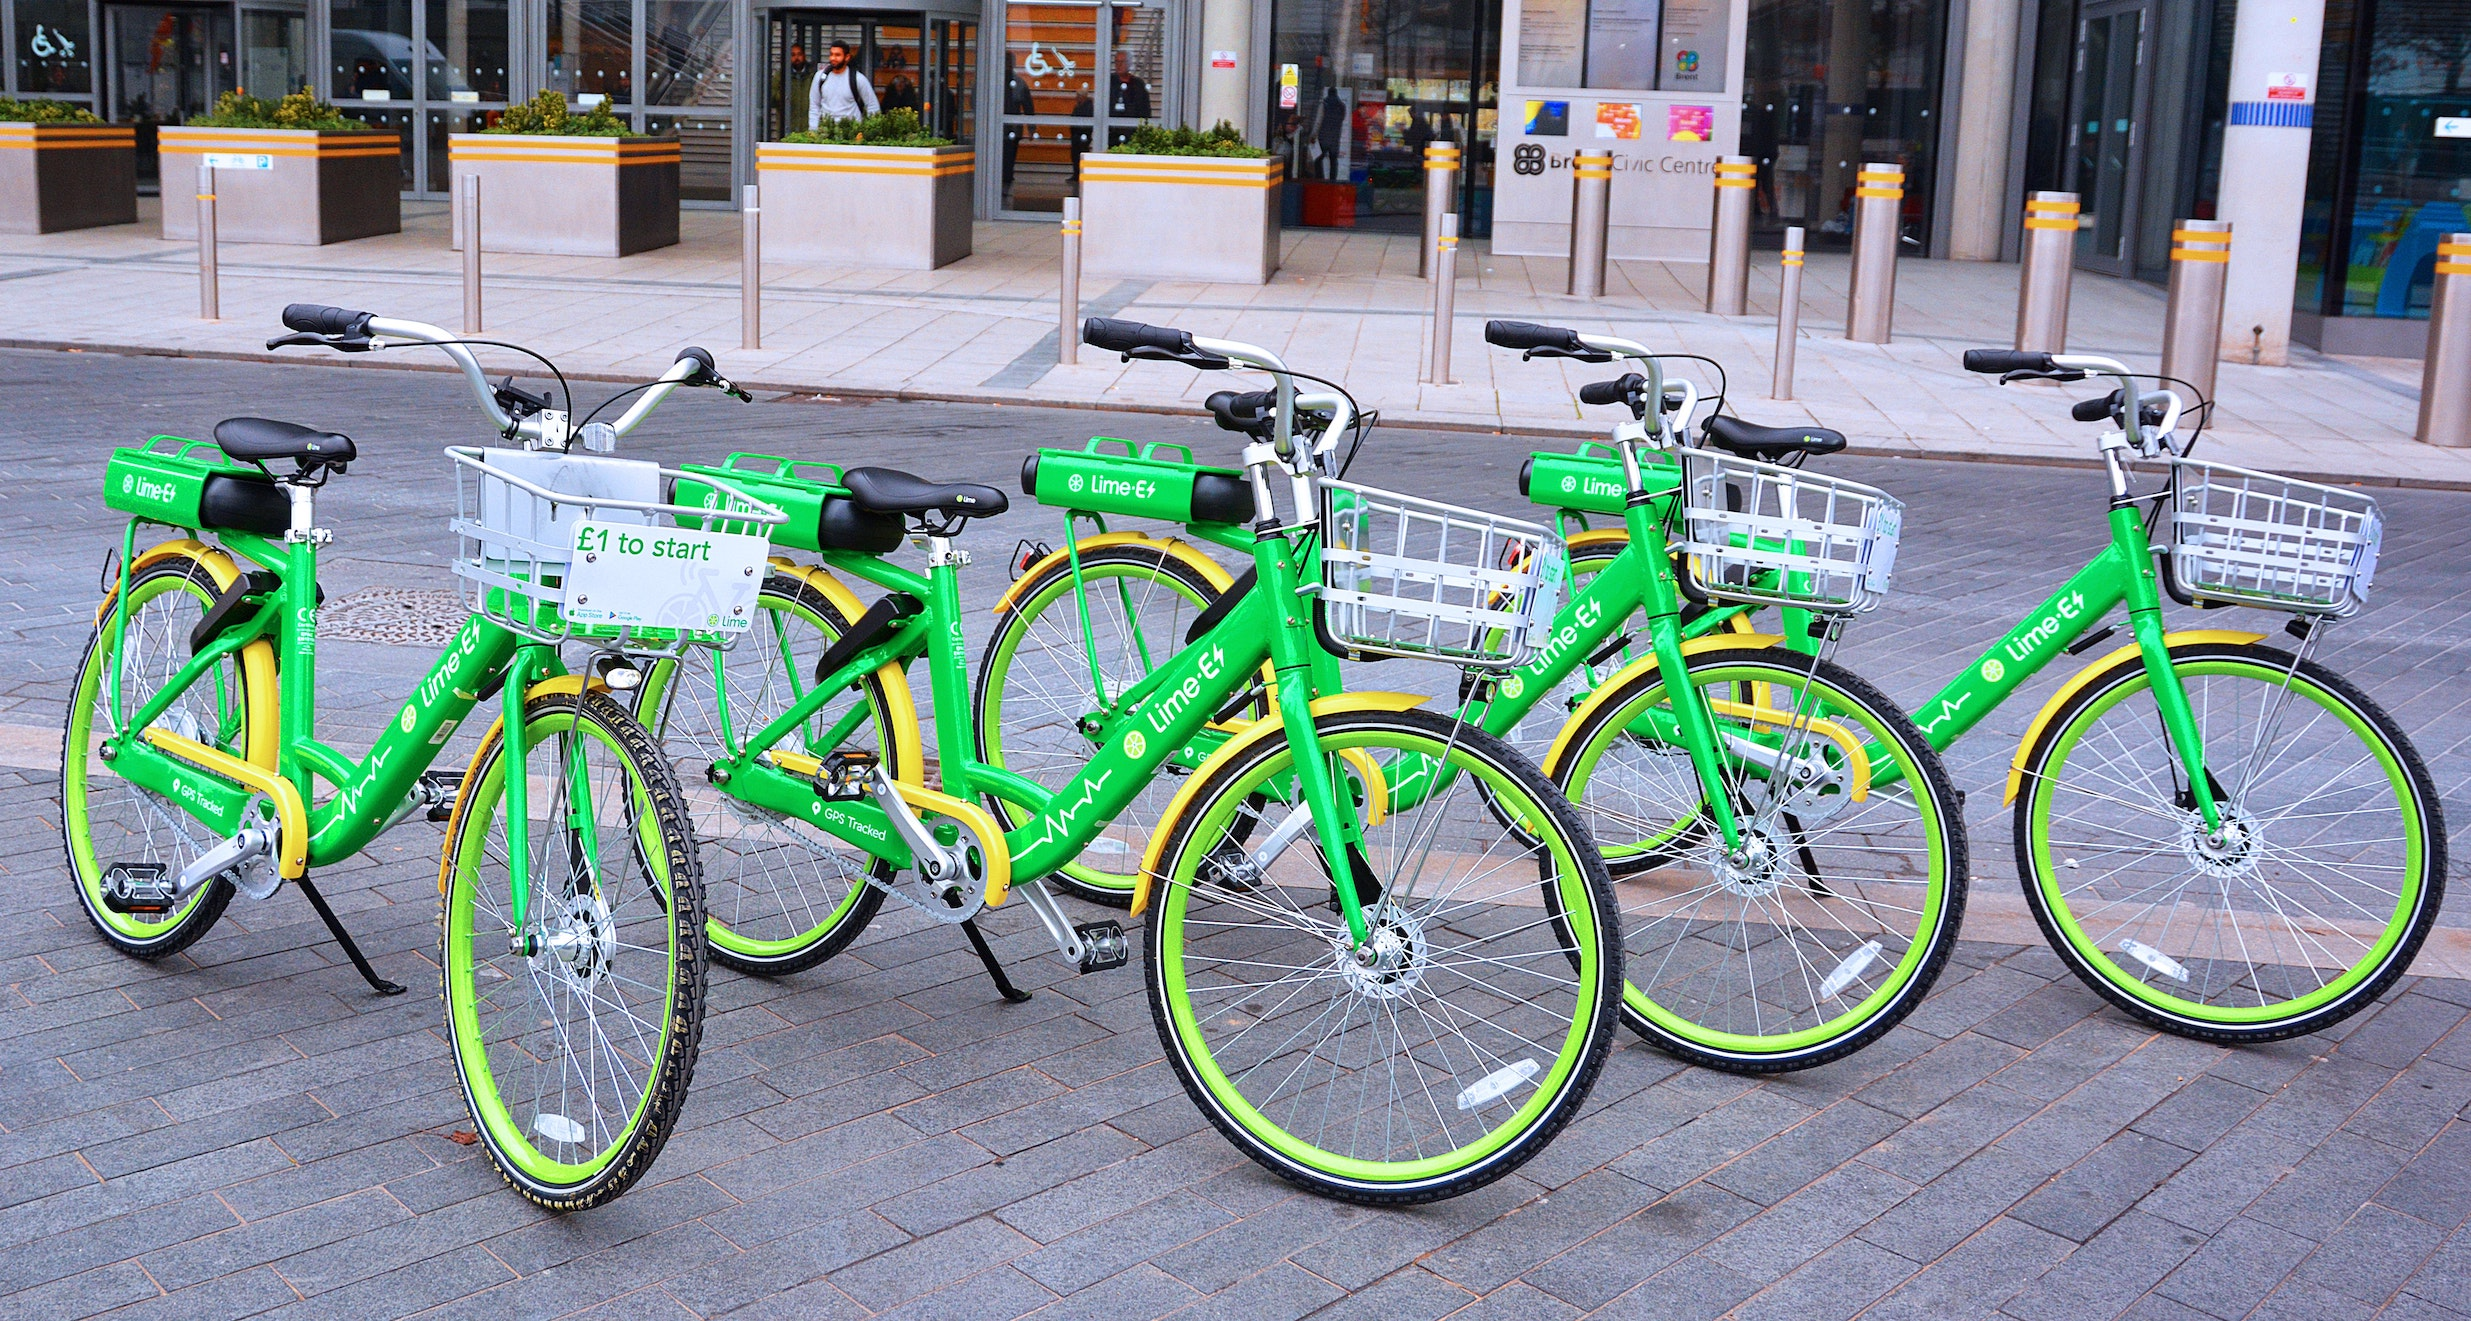 Lime Bikes in London: One Hot, Green